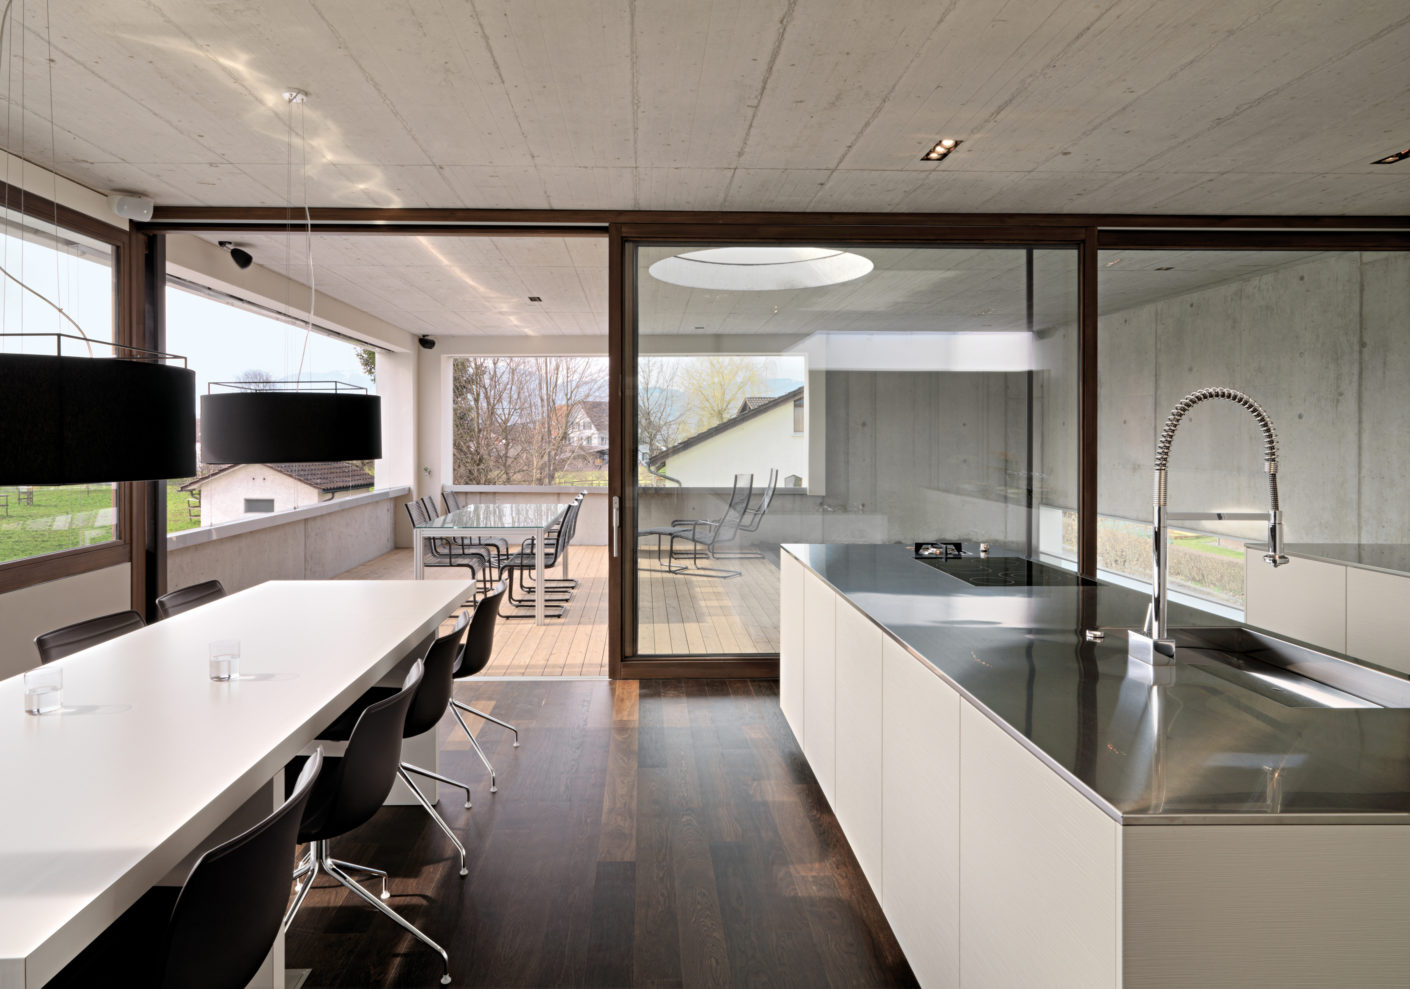 Raw exposed concrete and a dark oak floor provide for the contrasts in the restrained architecture.